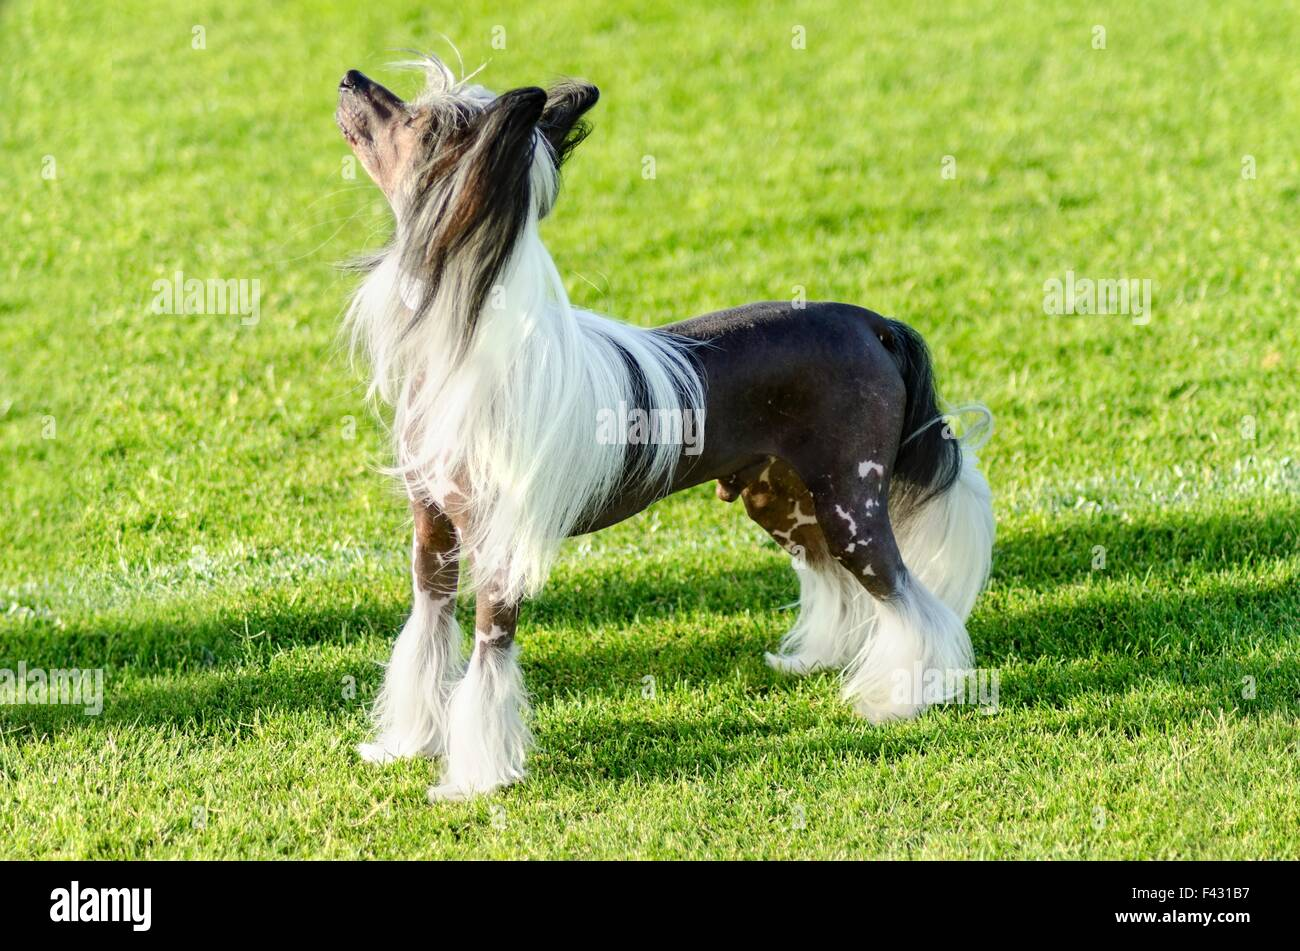 A small black and white hairless Chinese Crested dog standing on the lawn looking very elegant. The hairless breed - Stock Image